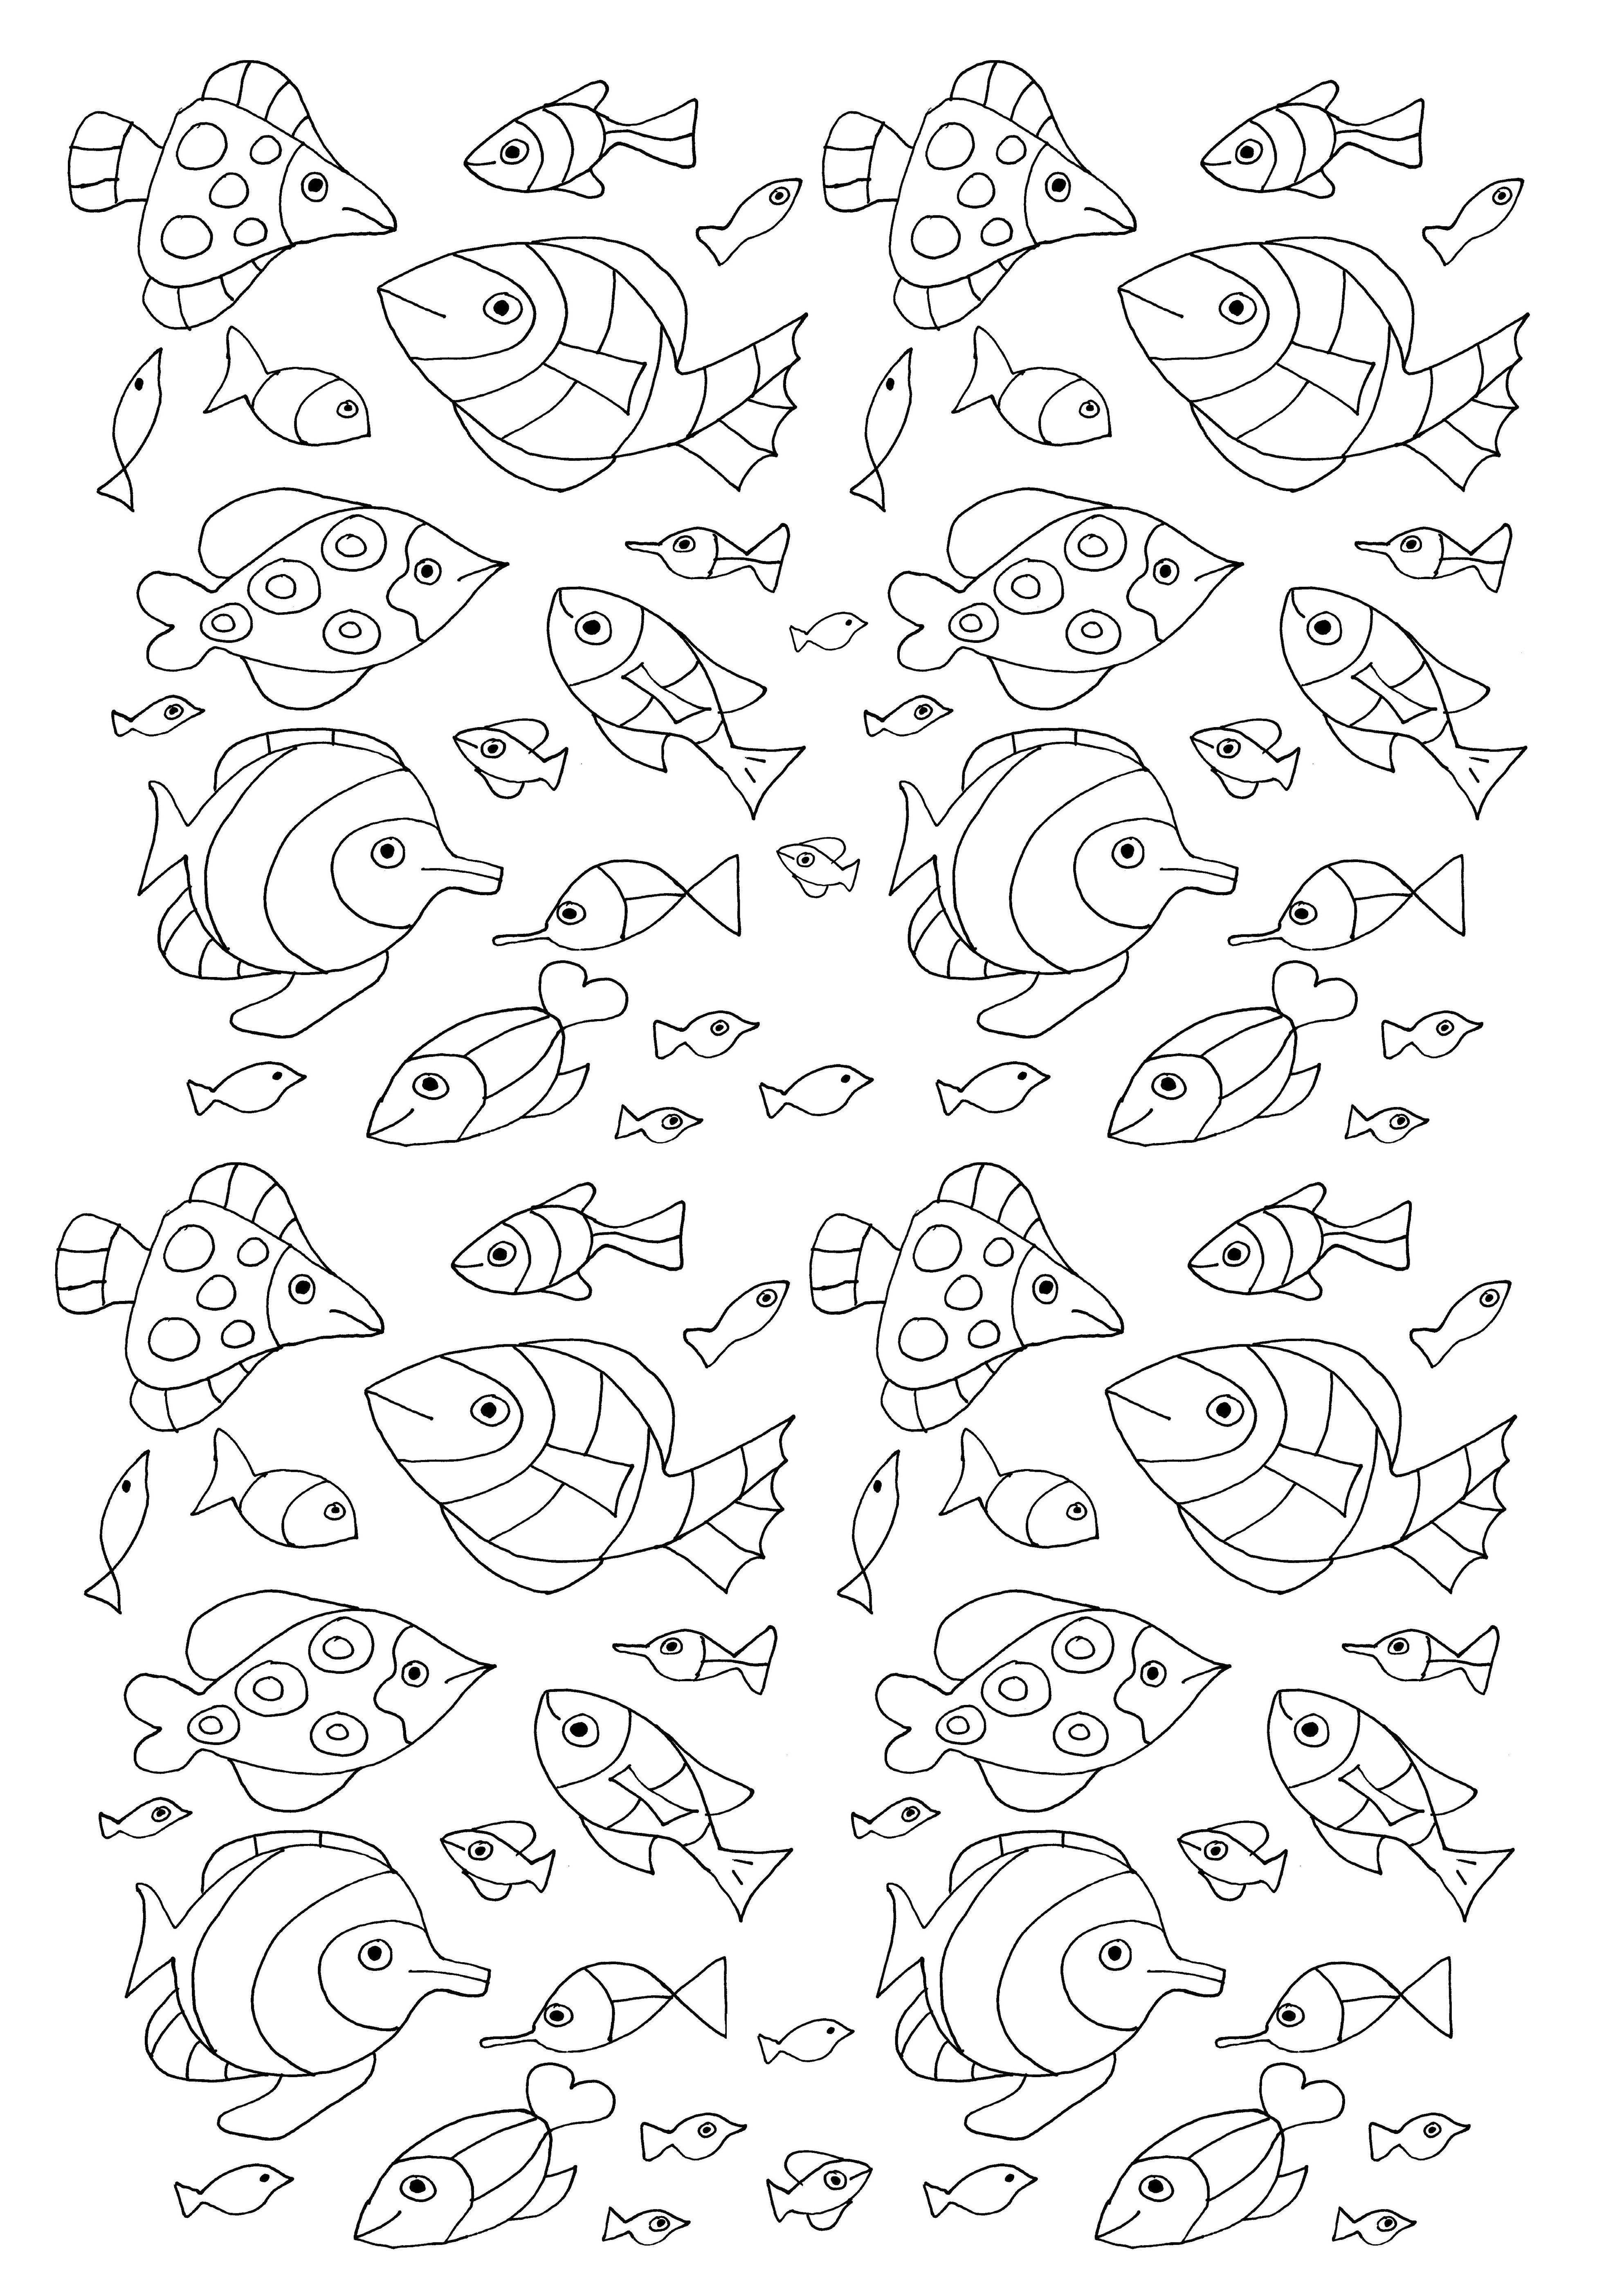 100 Fish Fishes Coloring Pages For Adults Just Color Fish Coloring Page Coloring Pages Insect Coloring Pages